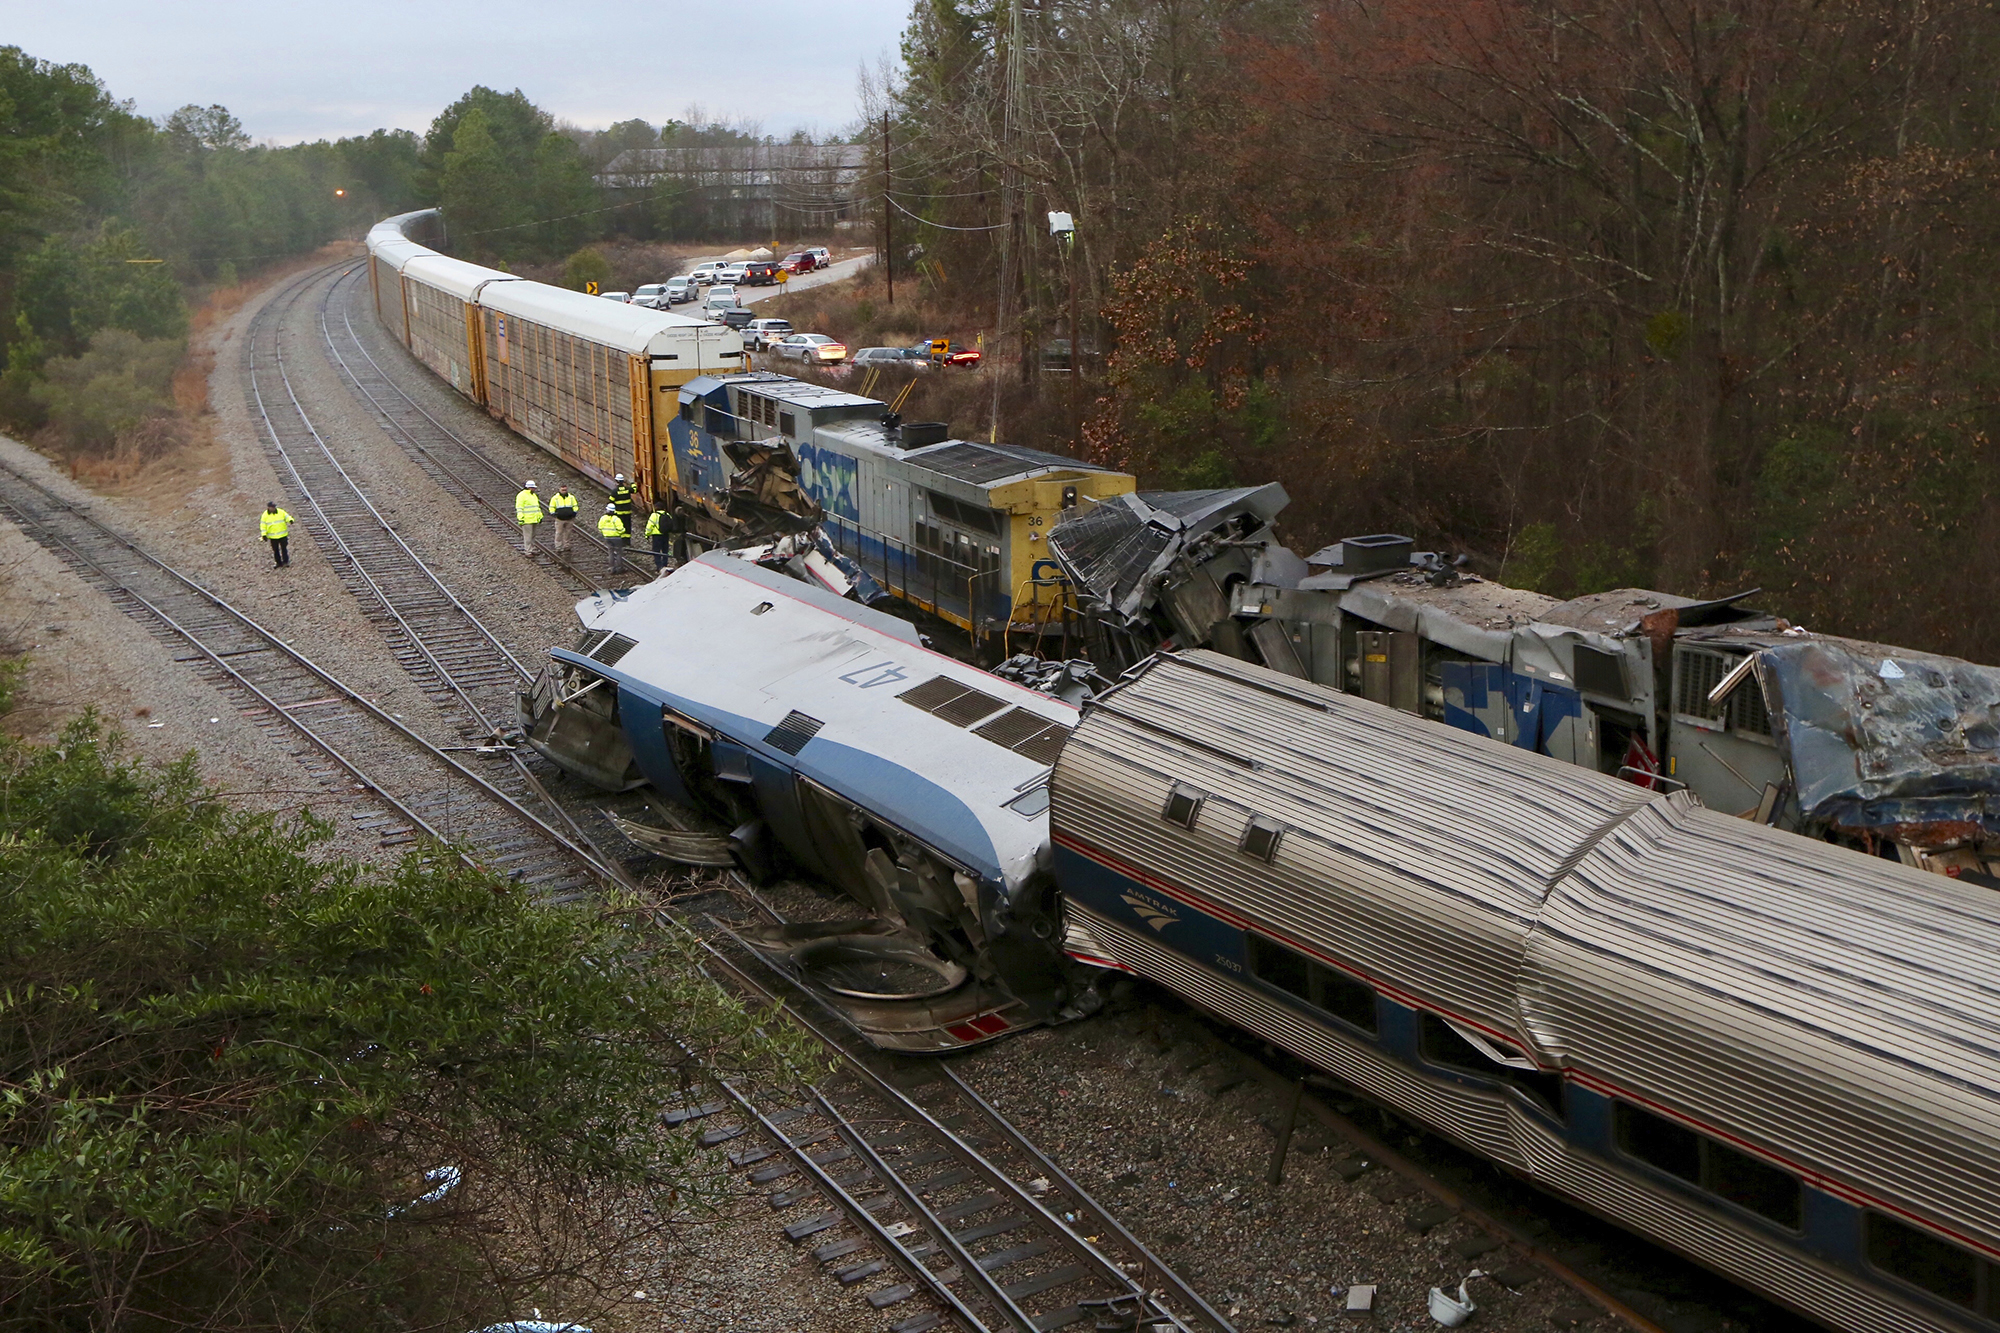 An Amtrak train crash in Cayce, South Carolina, on Feb. 4, 2018 killed at least two people and left dozens injured